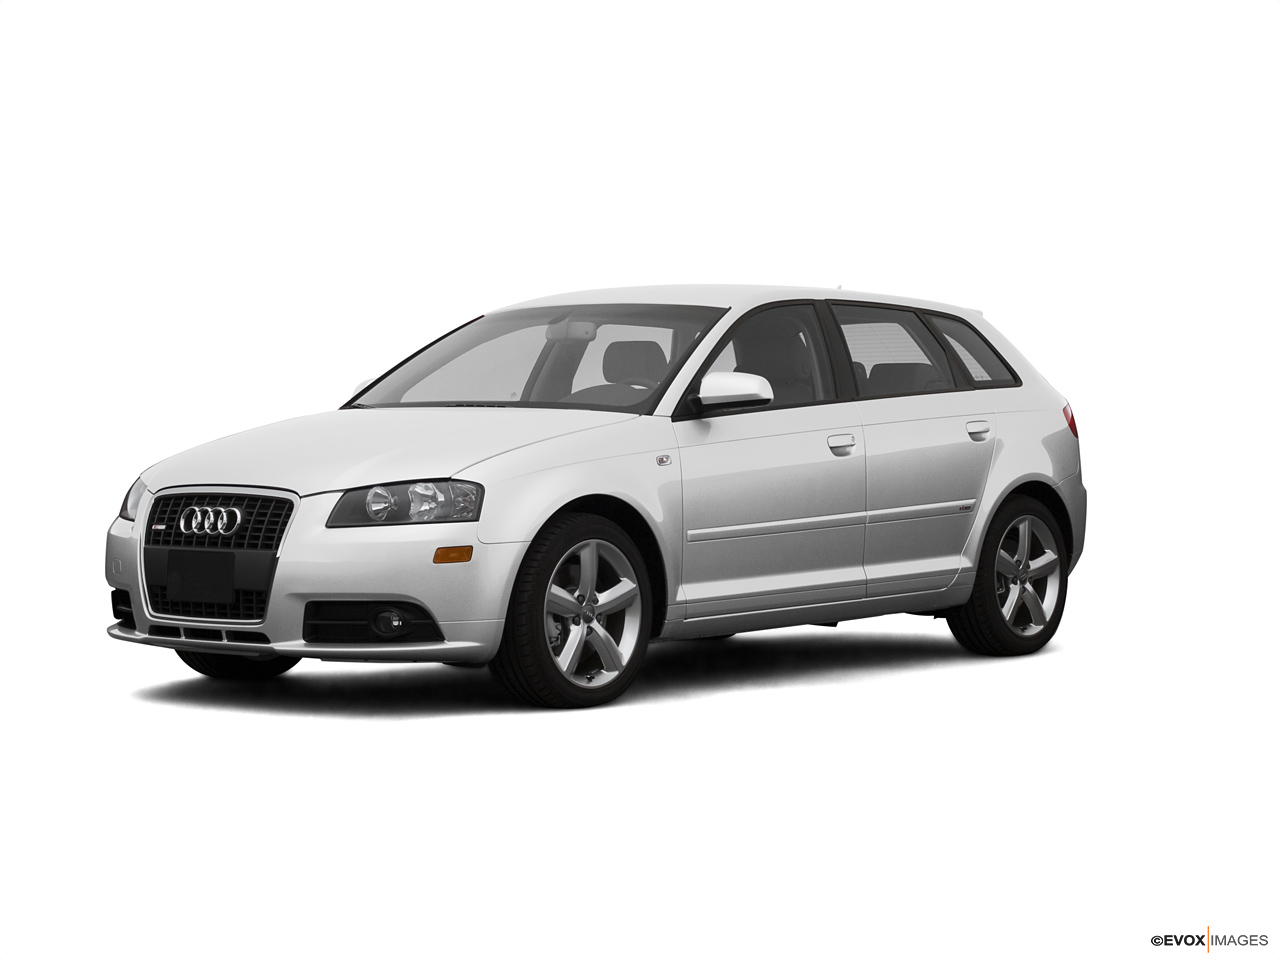 Audi Service By Top Rated Mechanics - YourMechanic